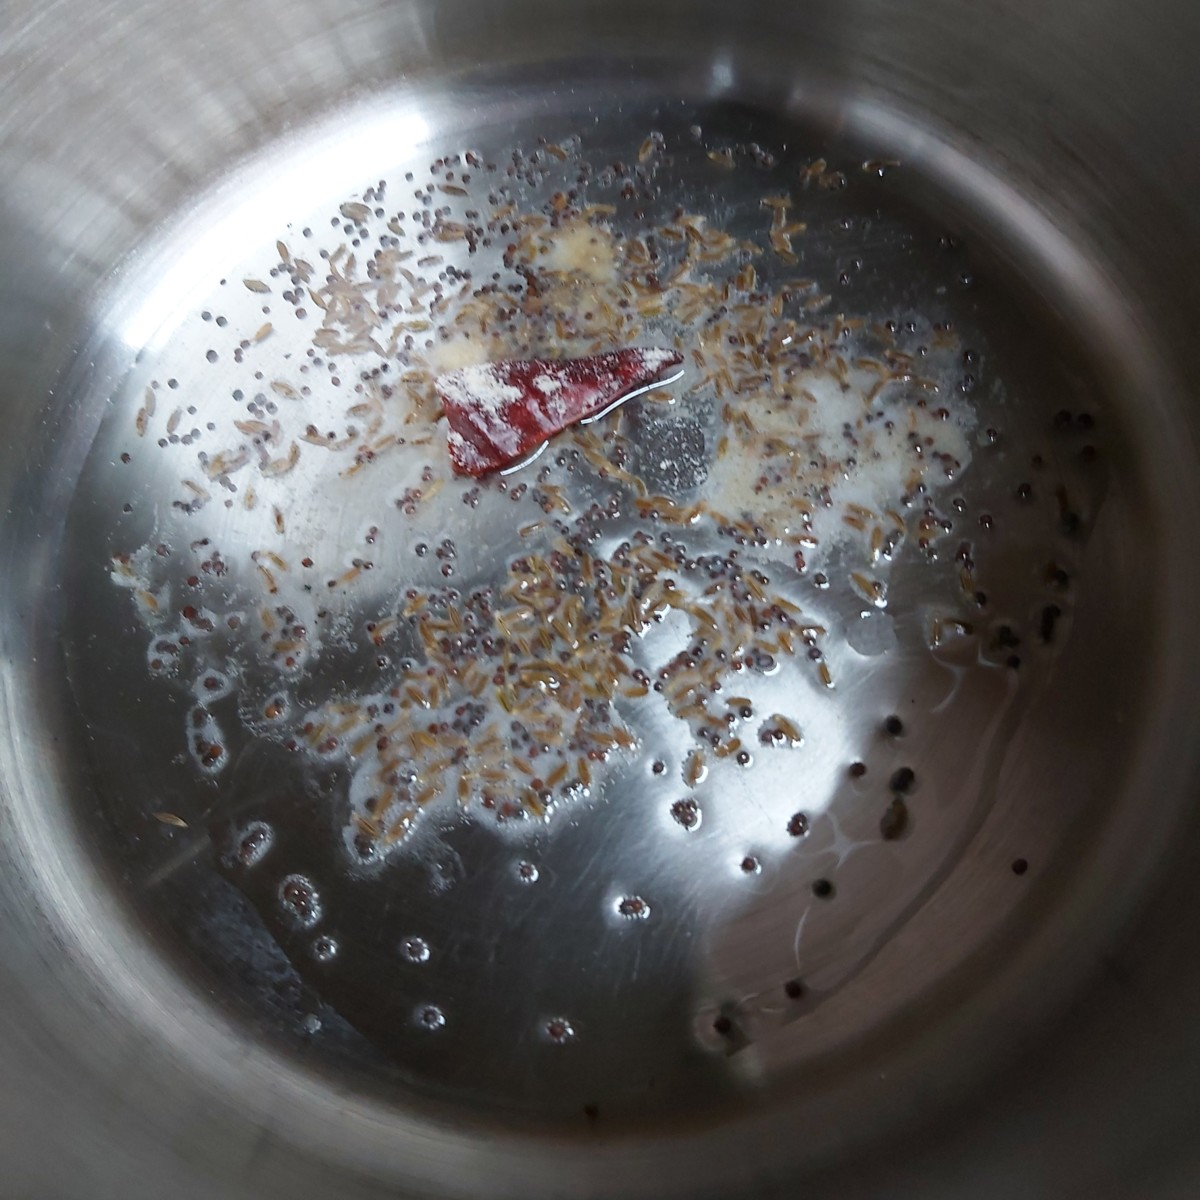 In a pan or vessel, heat the oil and splutter 1/2 teaspoon of mustard seeds and 1/2 tablespoon cumin seeds. Add 1-2 broken red chili and asafoetida. Fry.